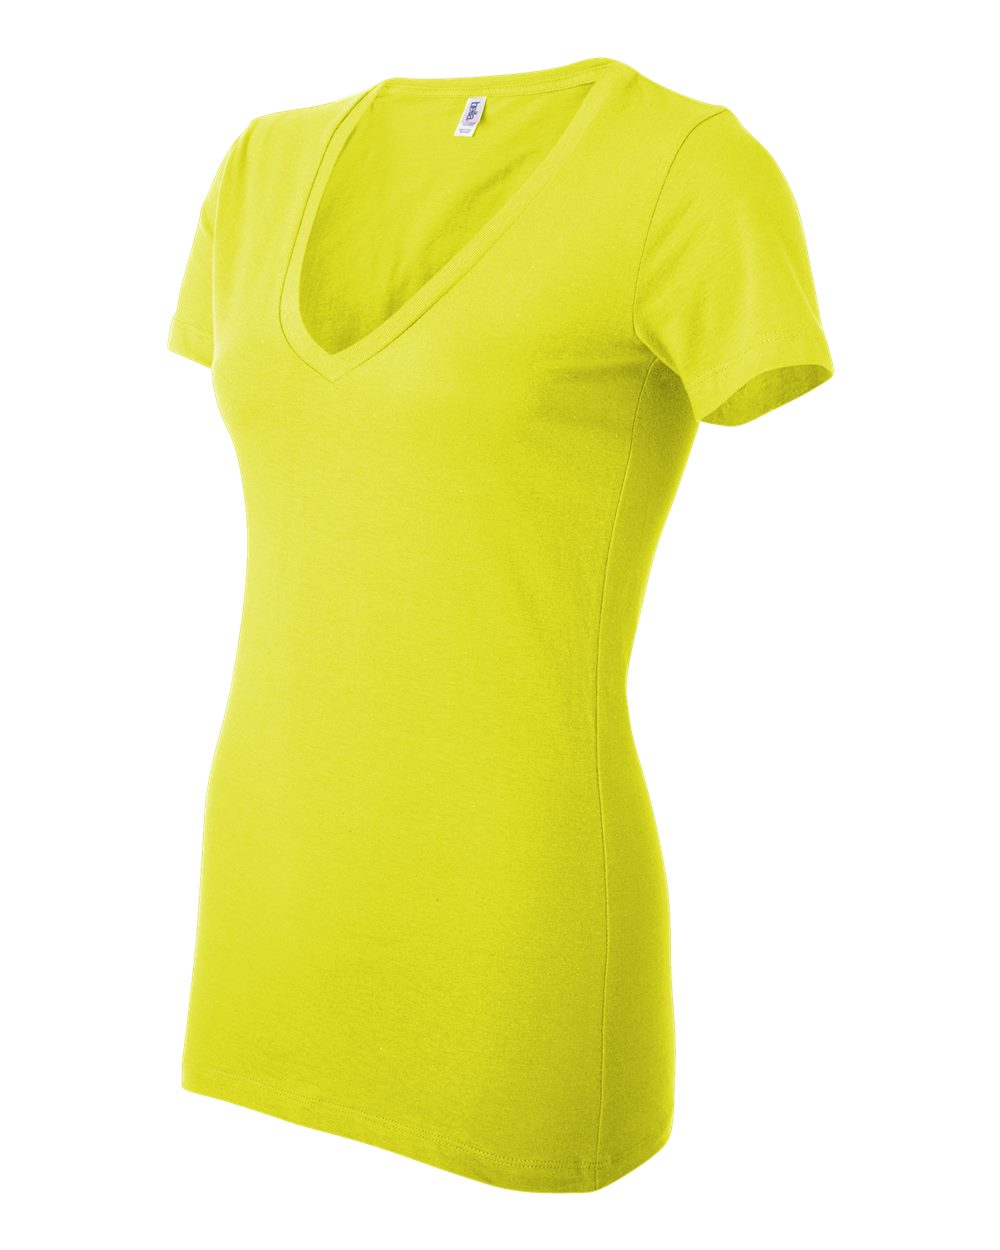 Bella-Canvas-Women-039-s-Jersey-Short-Sleeve-Deep-V-Neck-T-Shirt-B6035-S-2XL thumbnail 33